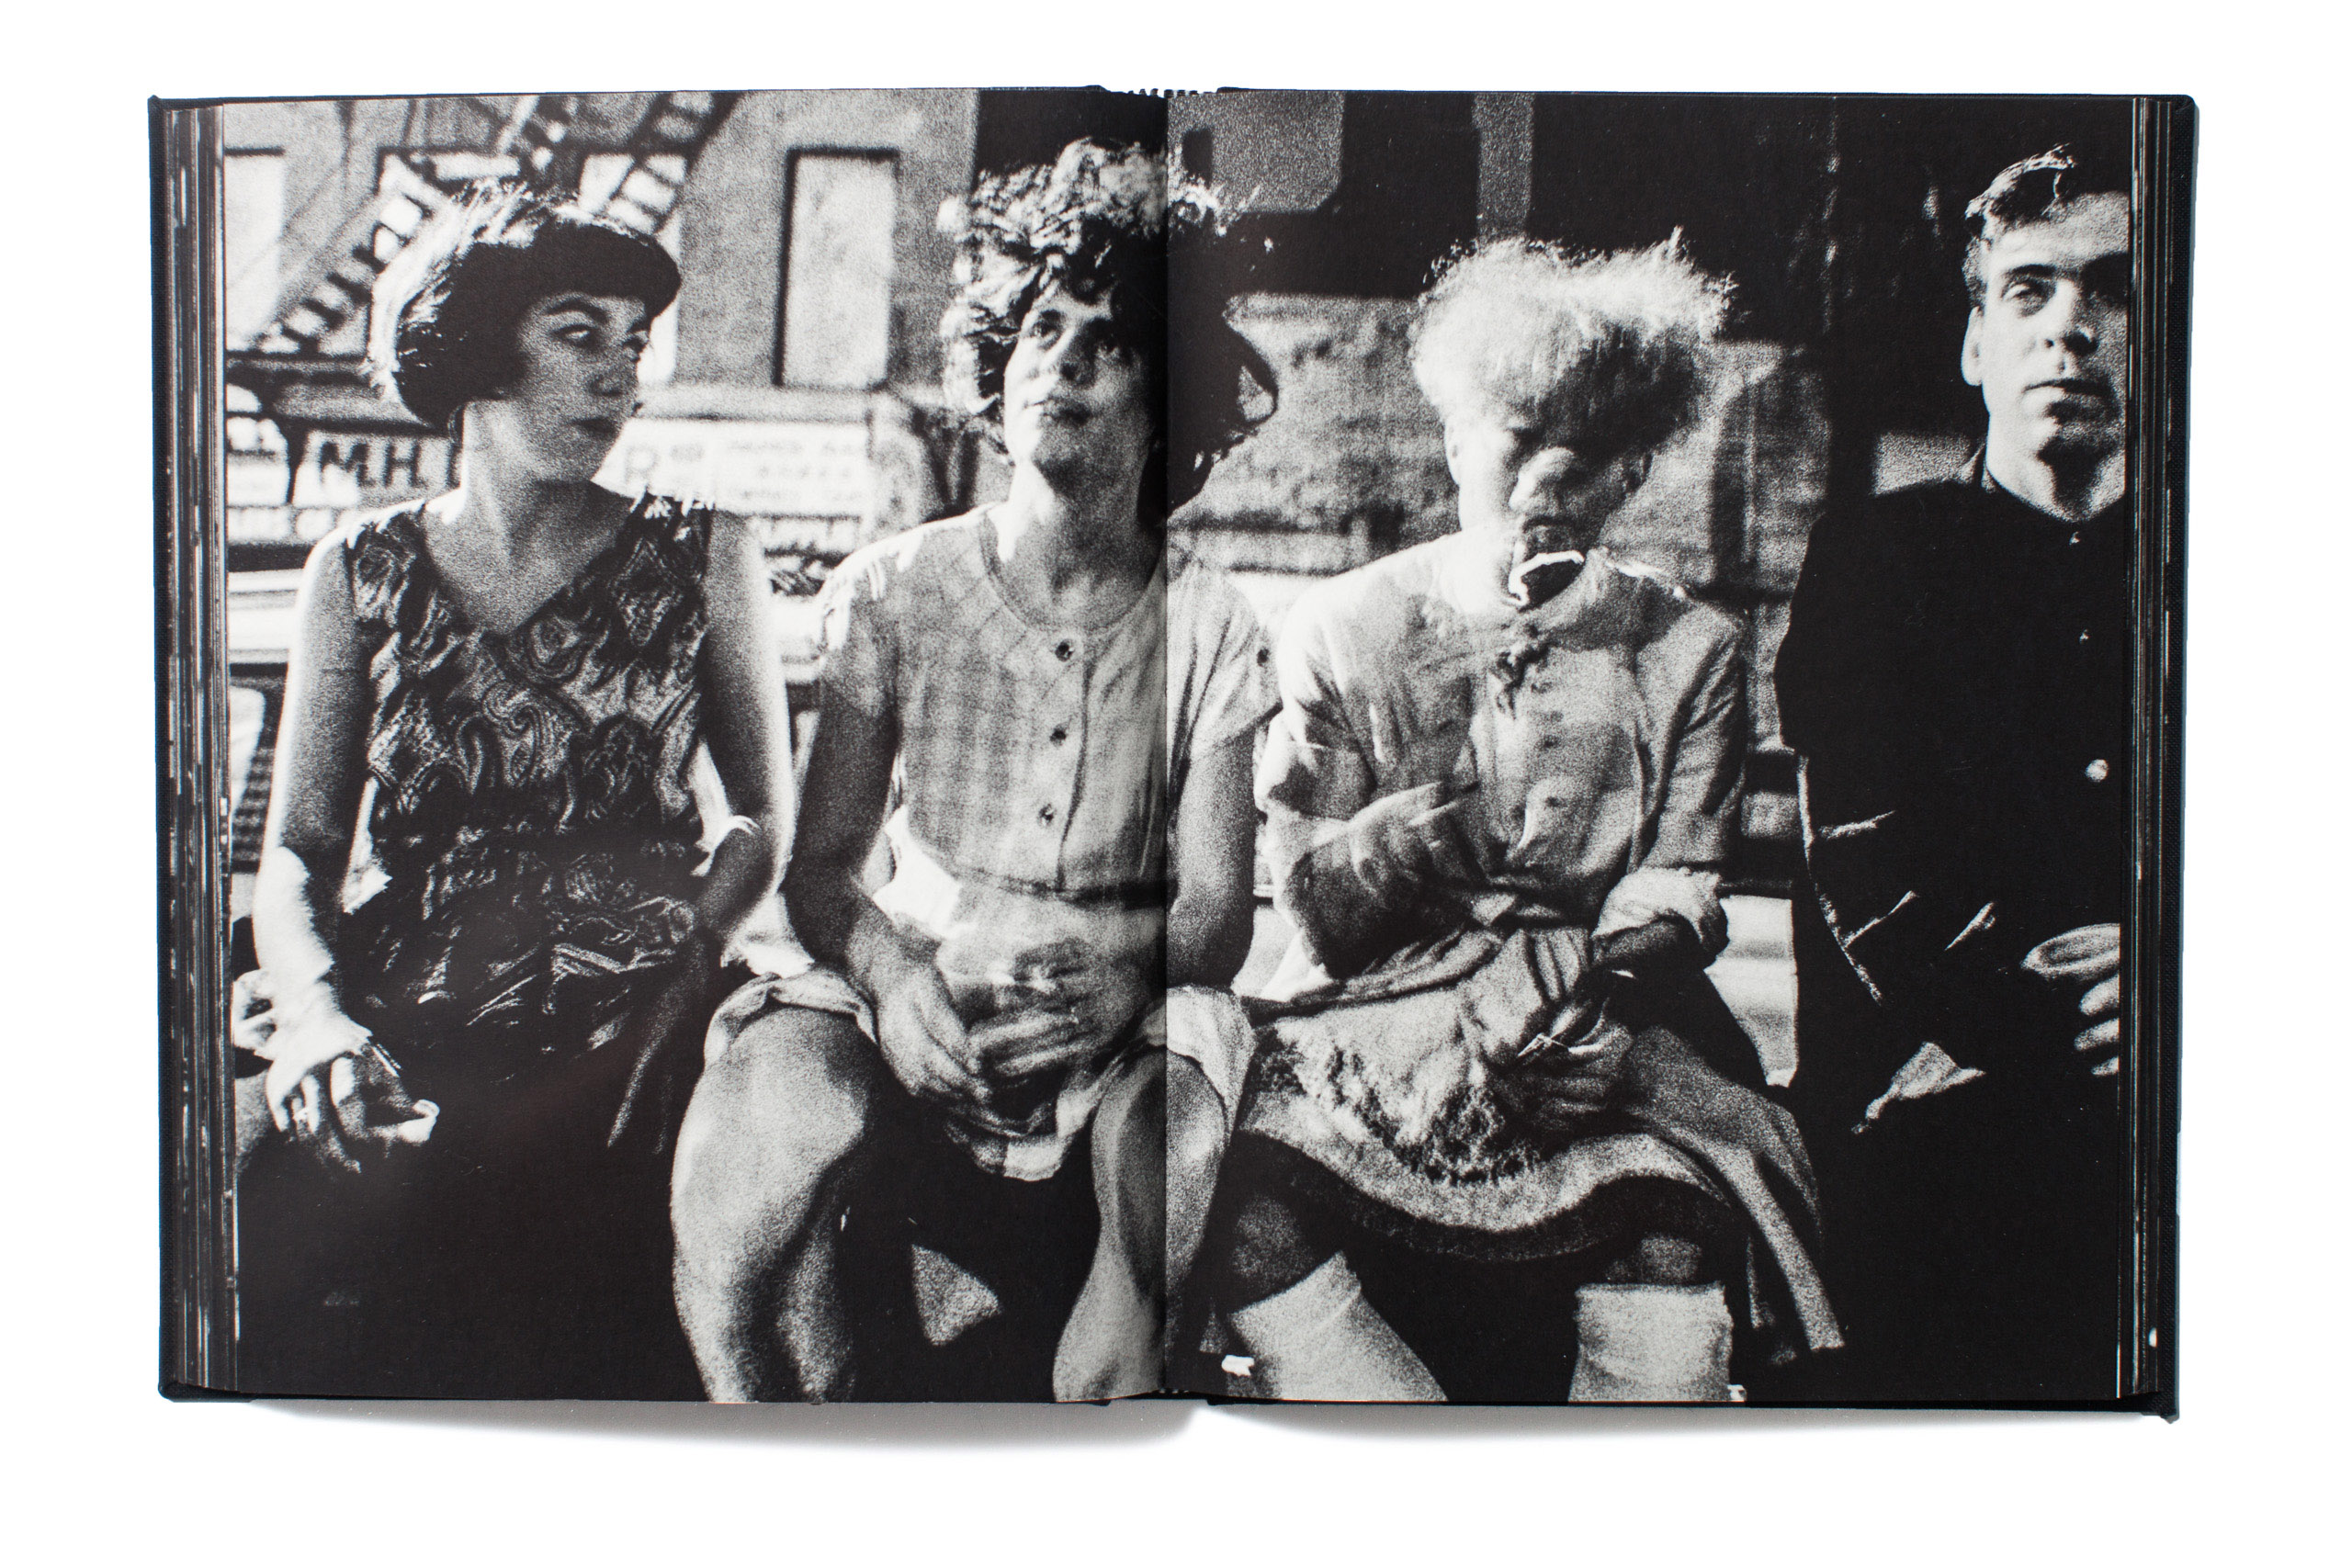 """""""Ken Schles' <i>Invisible City</i> captured the zeitgeist of New York just as Weegee and Klein did before him. His newest book <i>Night Walk</i> culled from work in his archive, transports us along the same streets during the same bygone era as <i>Invisible City</i>, but bring us to a new visceral destination. Night Walk, and a newly issued reprint of <i>Invisible City</i>―both capture the sensuous photo-gravure of the original <i>Invisible City</i>―and are published by Steidl.""""                                                                      -Jason Eskenazi, photographer, author of <i>By the Glow of the Jukebox: The Americans List</i>"""